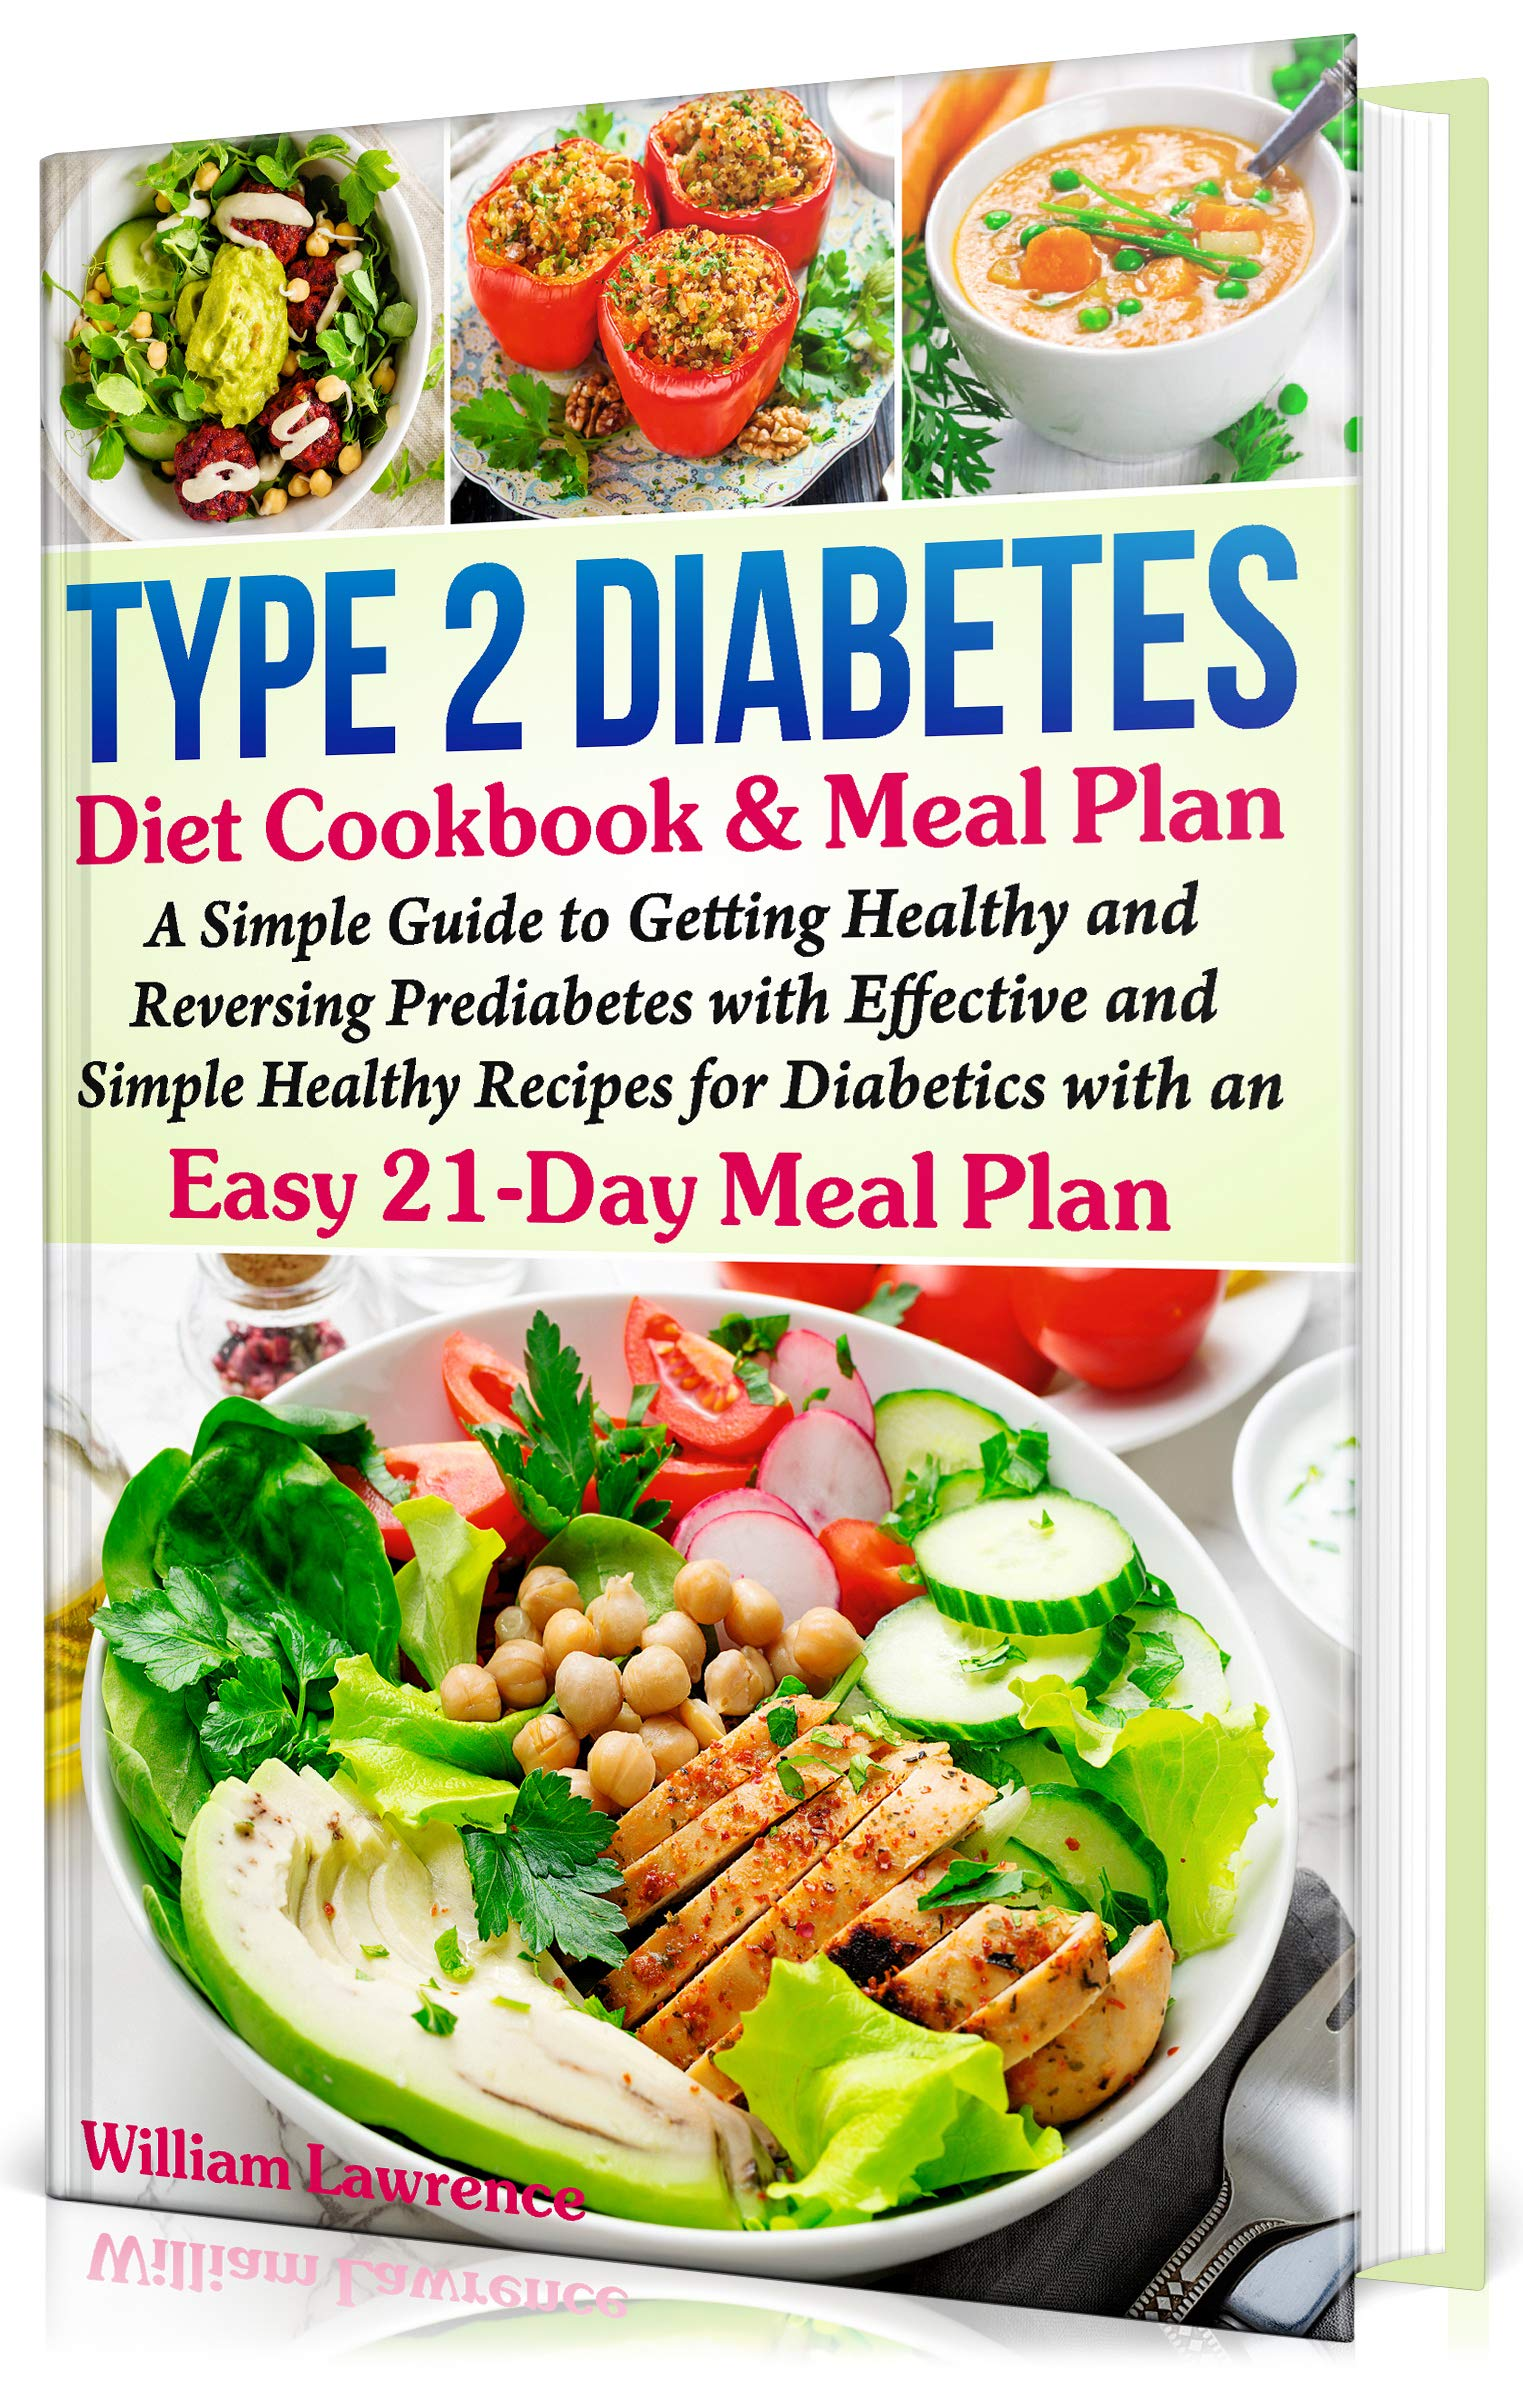 Download Type 2 Diabetes Diet Cookbook & Meal Plan: A Simple Guide to Getting Healthy and Reversing Prediabetes with Effective and Simple Healthy Recipes for Diabetics with an Easy 21-Day Meal Plan by William Lawrence